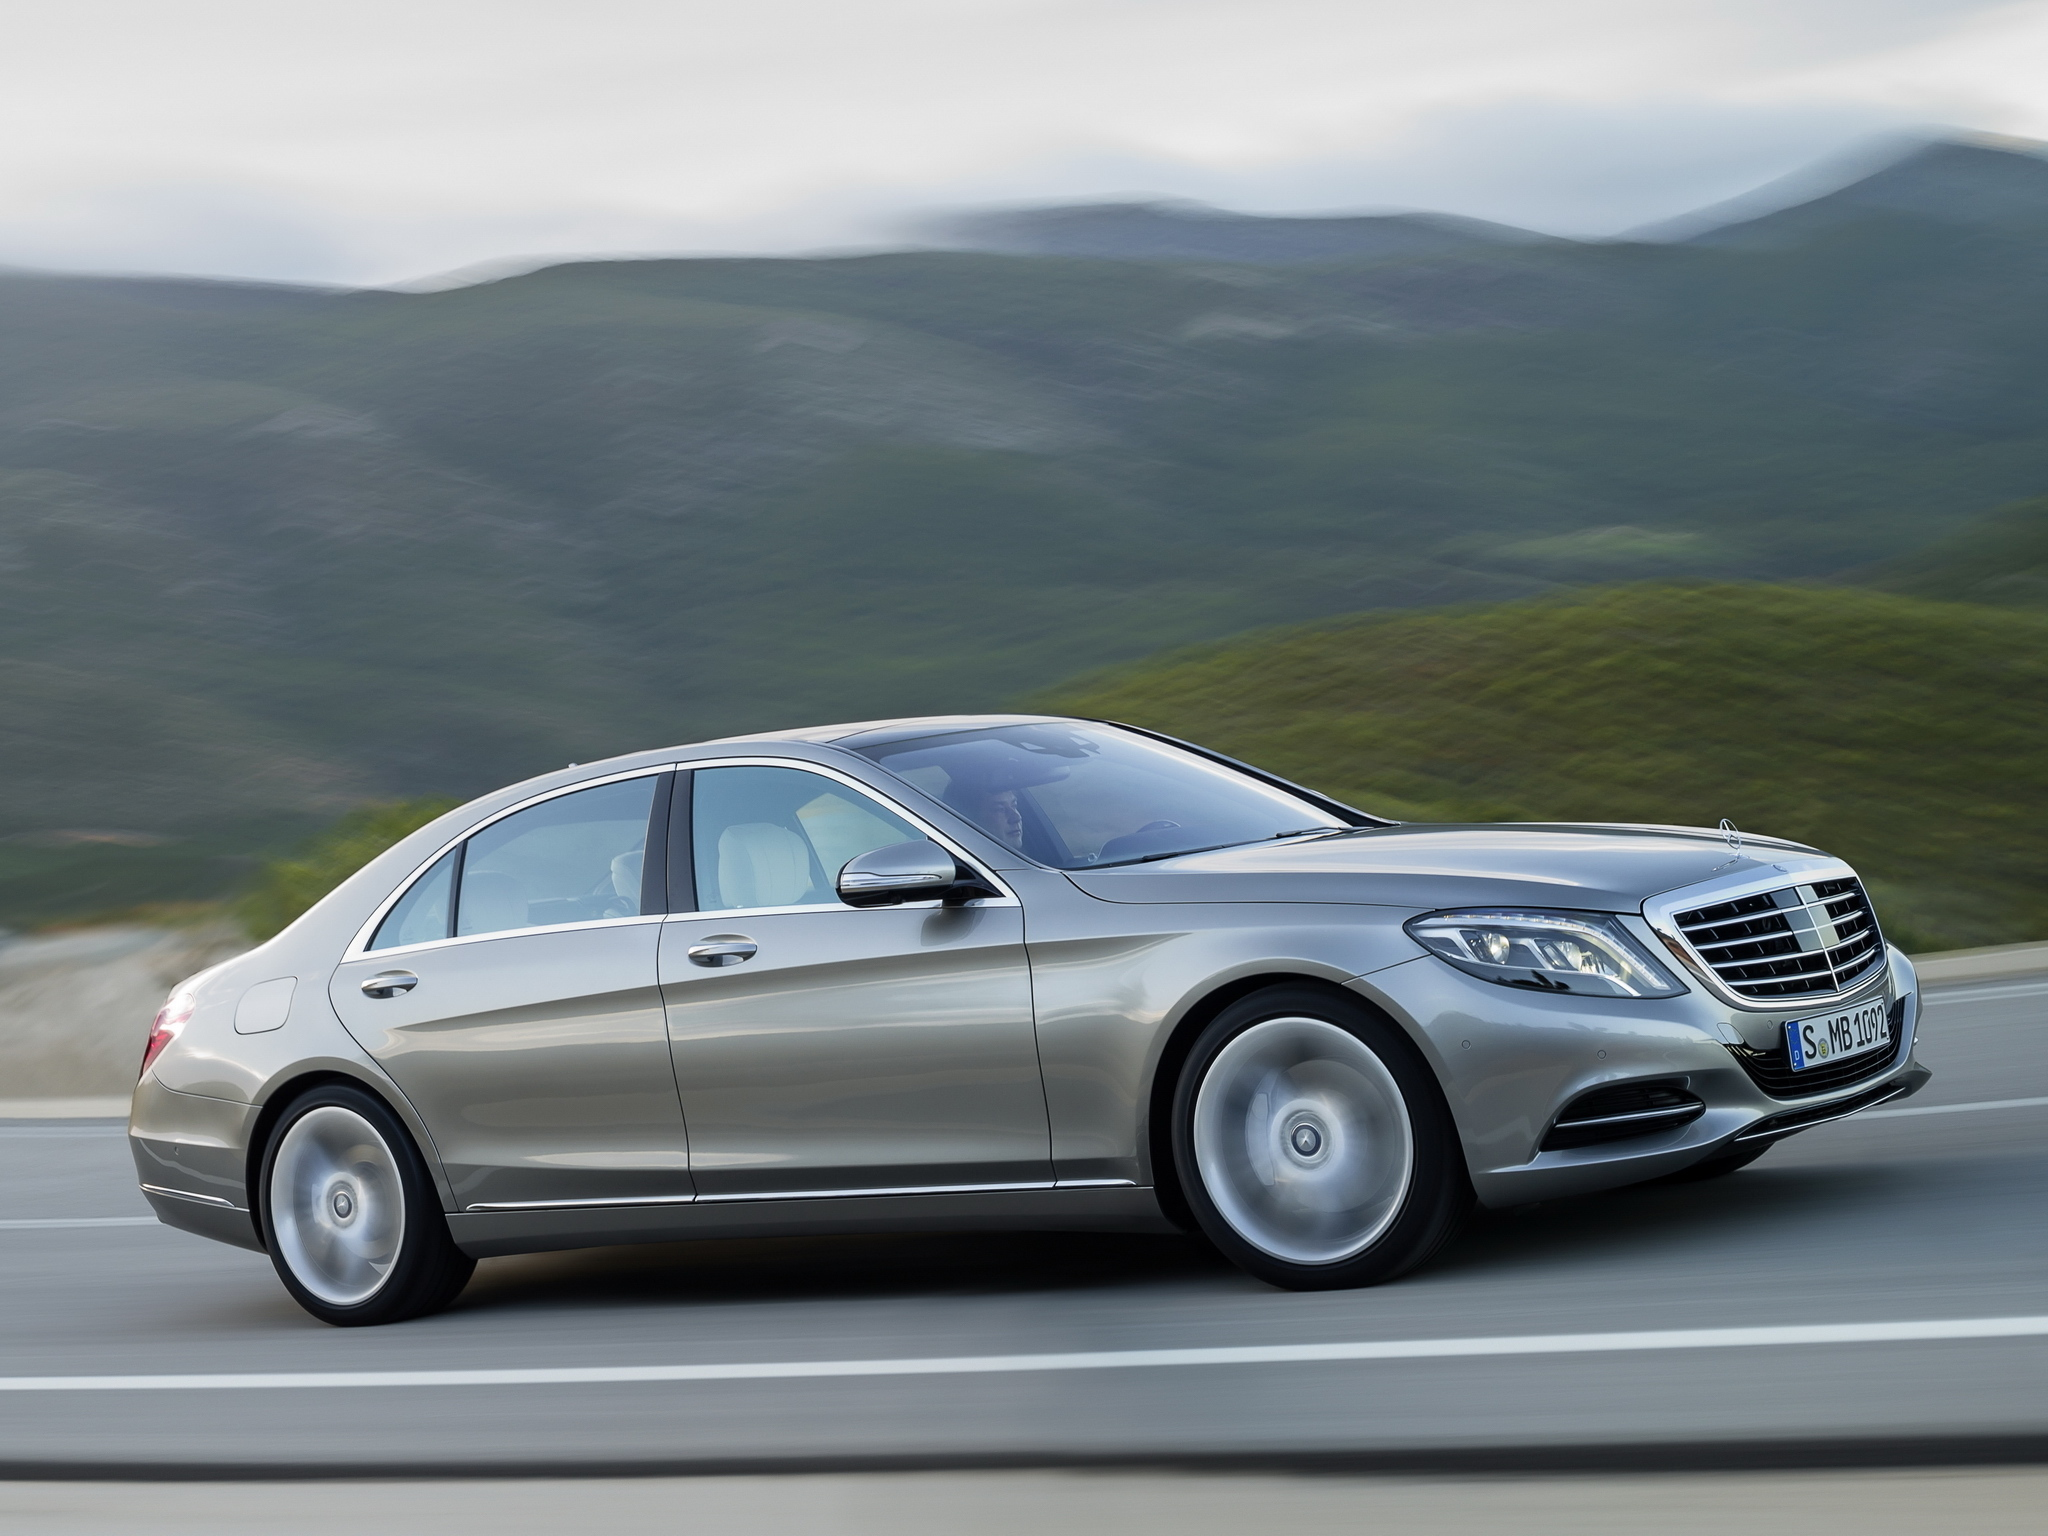 Cool image of mercedes benz s 400 wallpaper of hybrid for Mercedes benz car names